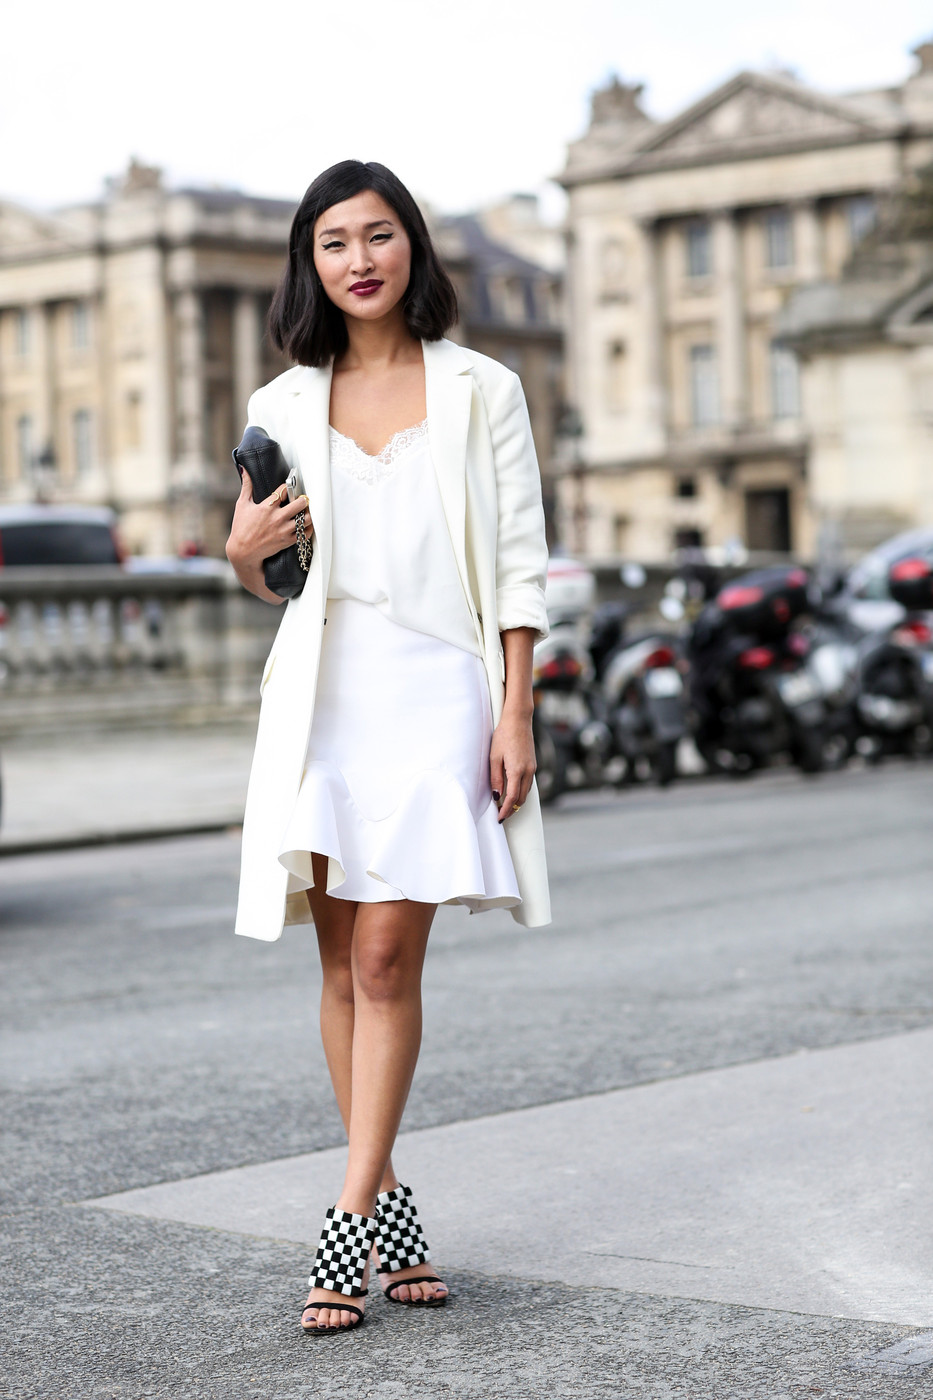 Nicole Warne, Blogger Extraordinaire and Our Latest Style Crush